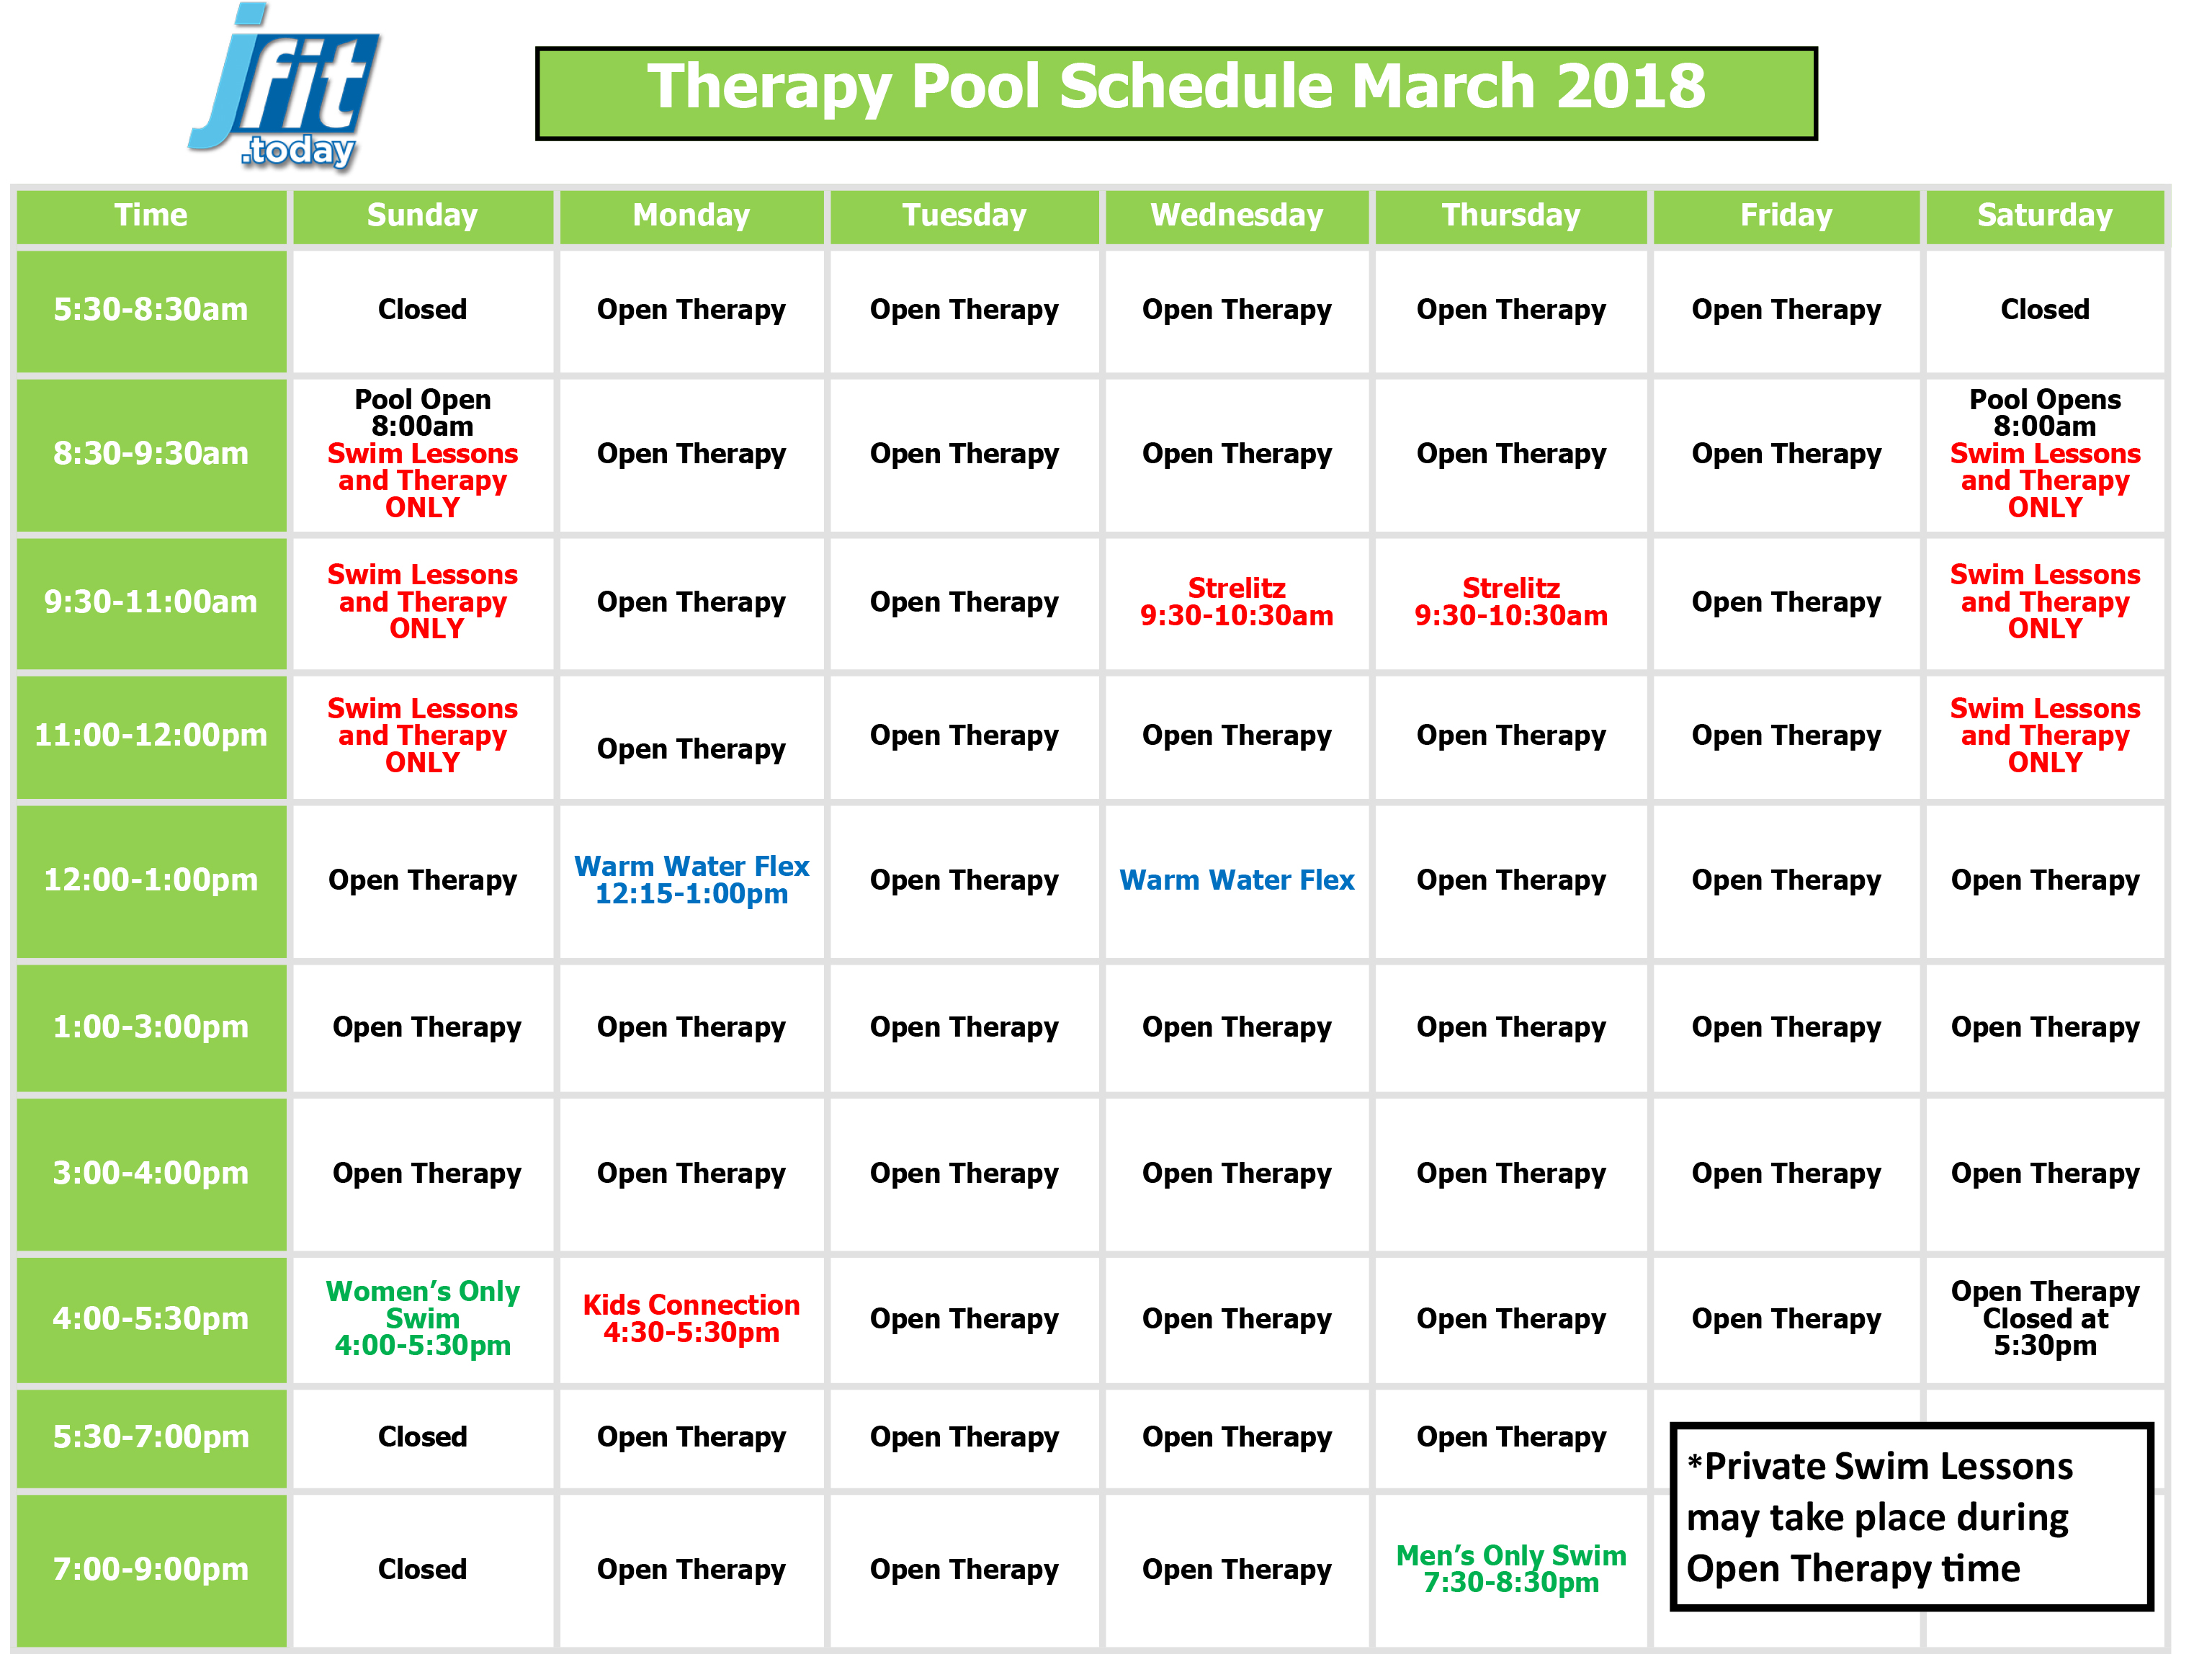 March 2018 Therapy Pool Schedule